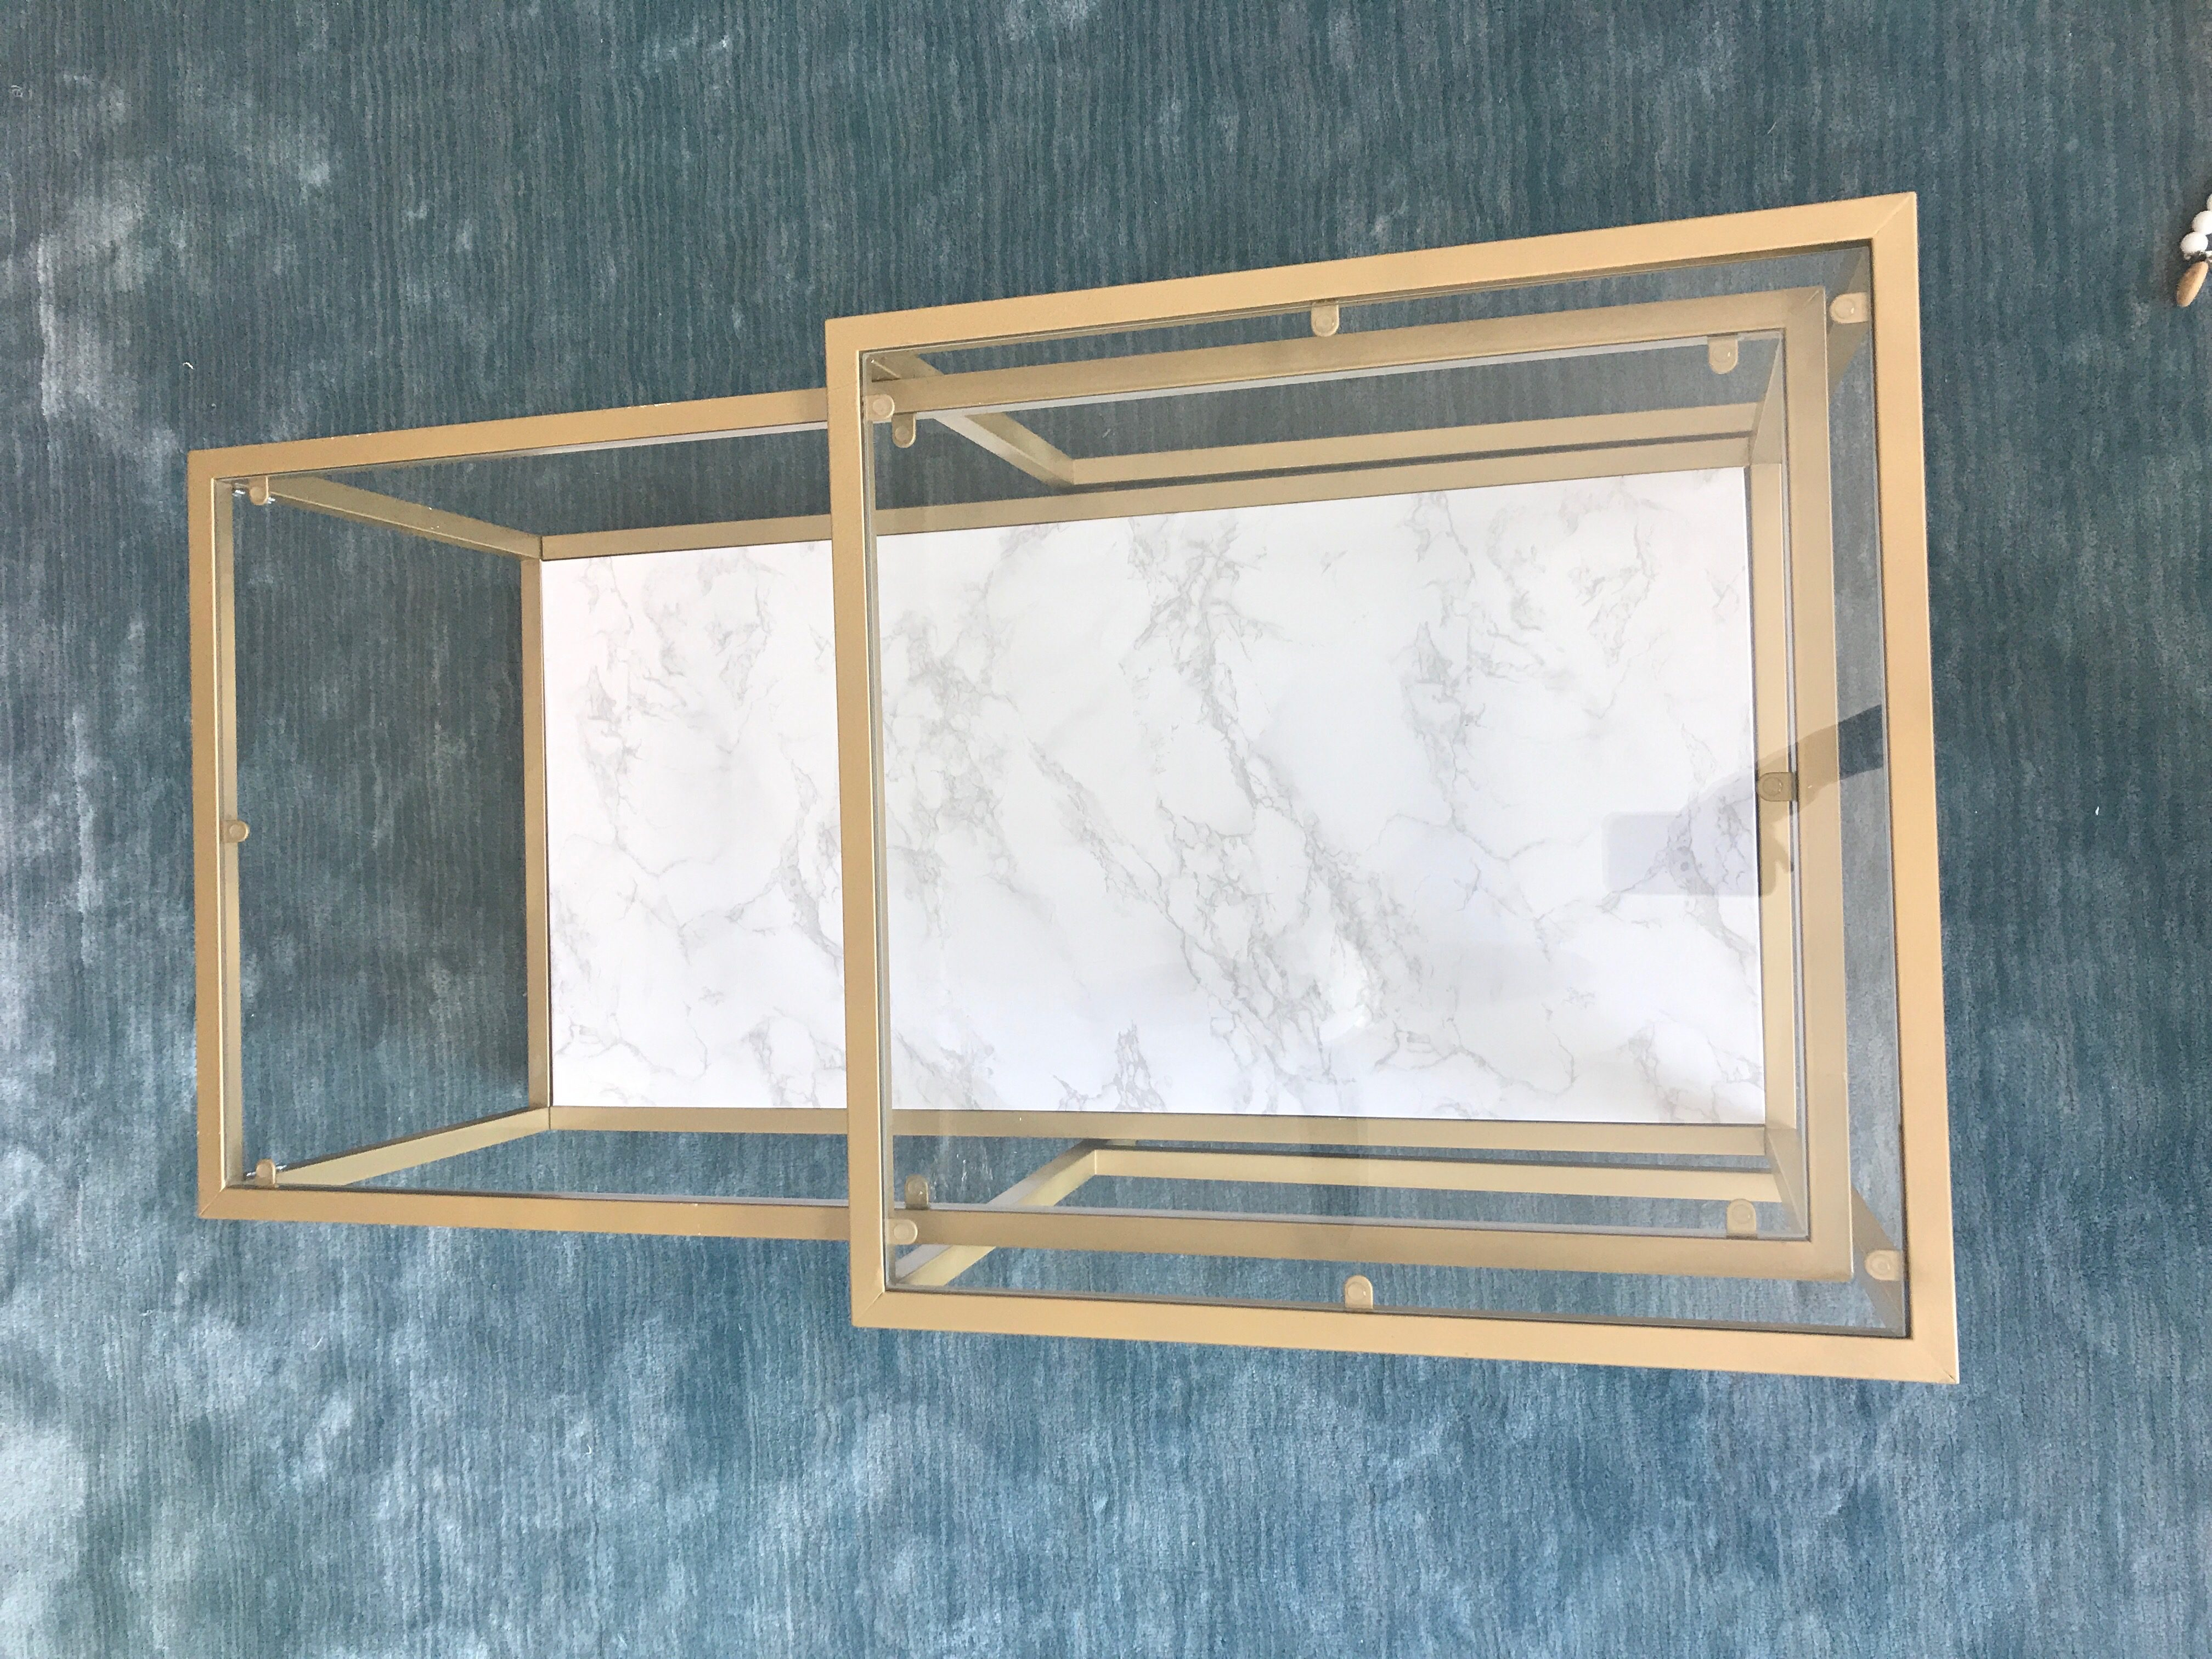 Ikea Table Hack Gold & Marble DIY Tutorial Smudgey